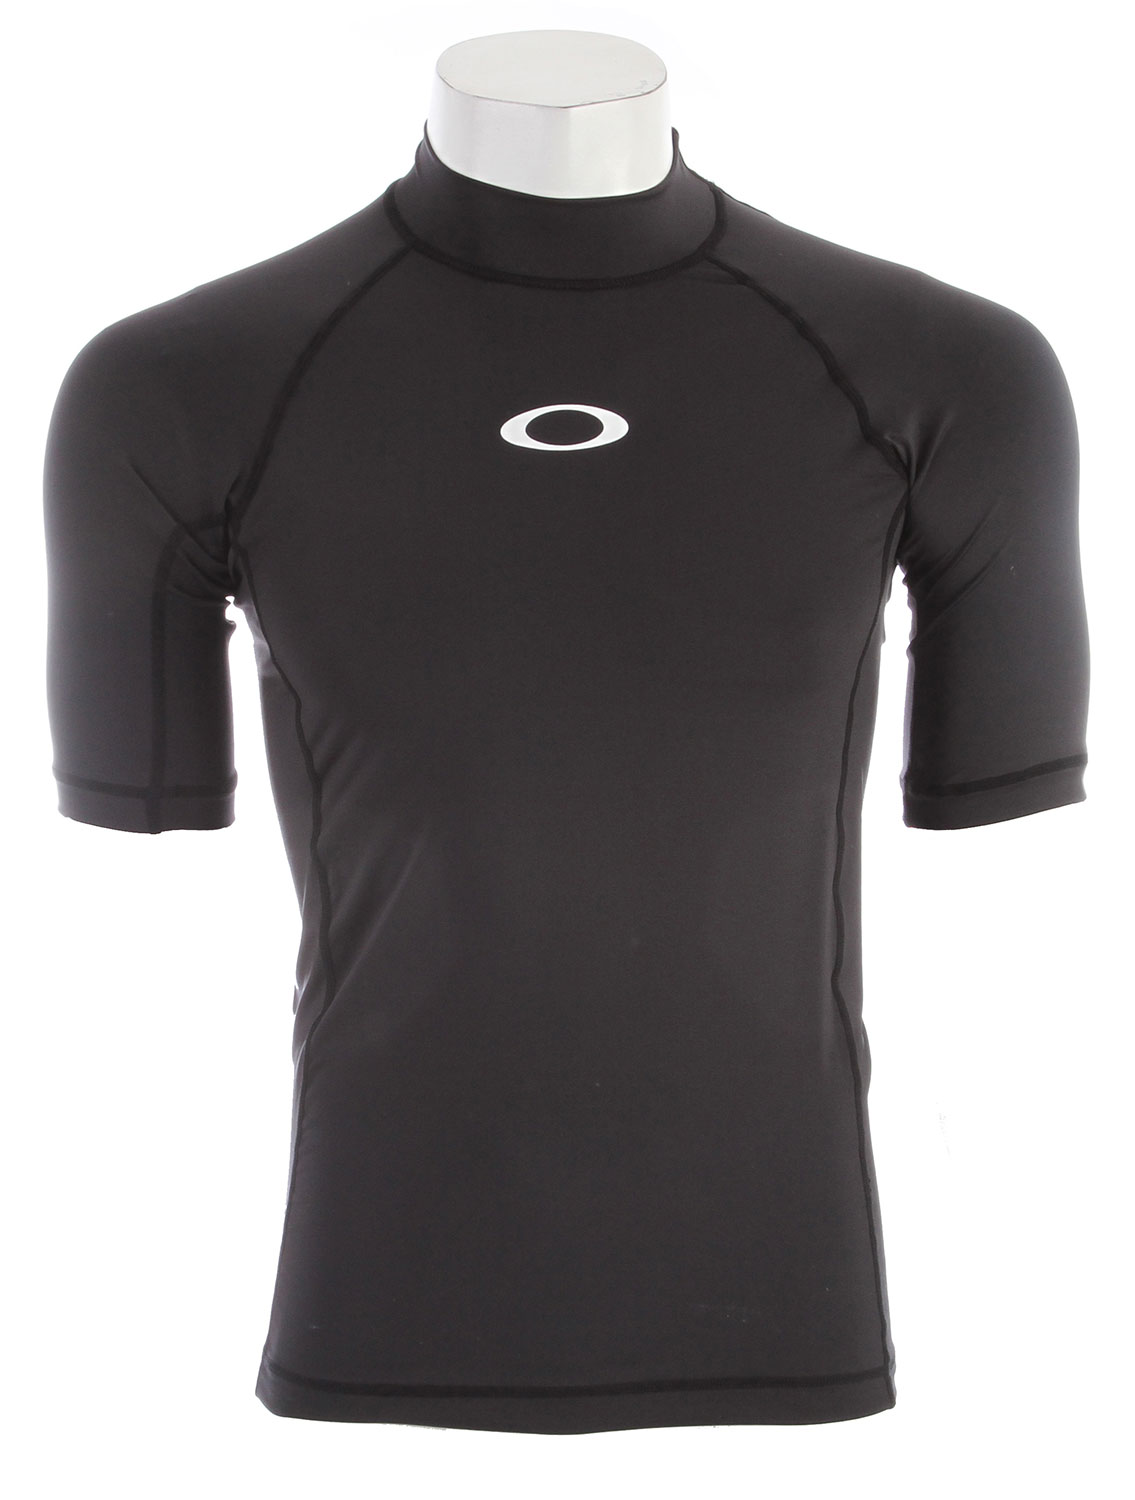 The Short?Sleeve Pressure Rashguard keeps serious surfers comfortable on the wave and behind the boat. In a contoured mock?neck design, this performance rashguard lets you move in style and without restriction in color?blocked stretch fabric.Key Features of the Oakley SS Pressure Rashguard: Quick?drying stretch fabric delivers lightweight comfort and freedom of movement UV+ 50 fabric keeps you protected in and out of the water 92% polyester / 8% spandex Fit: Regular - $21.95